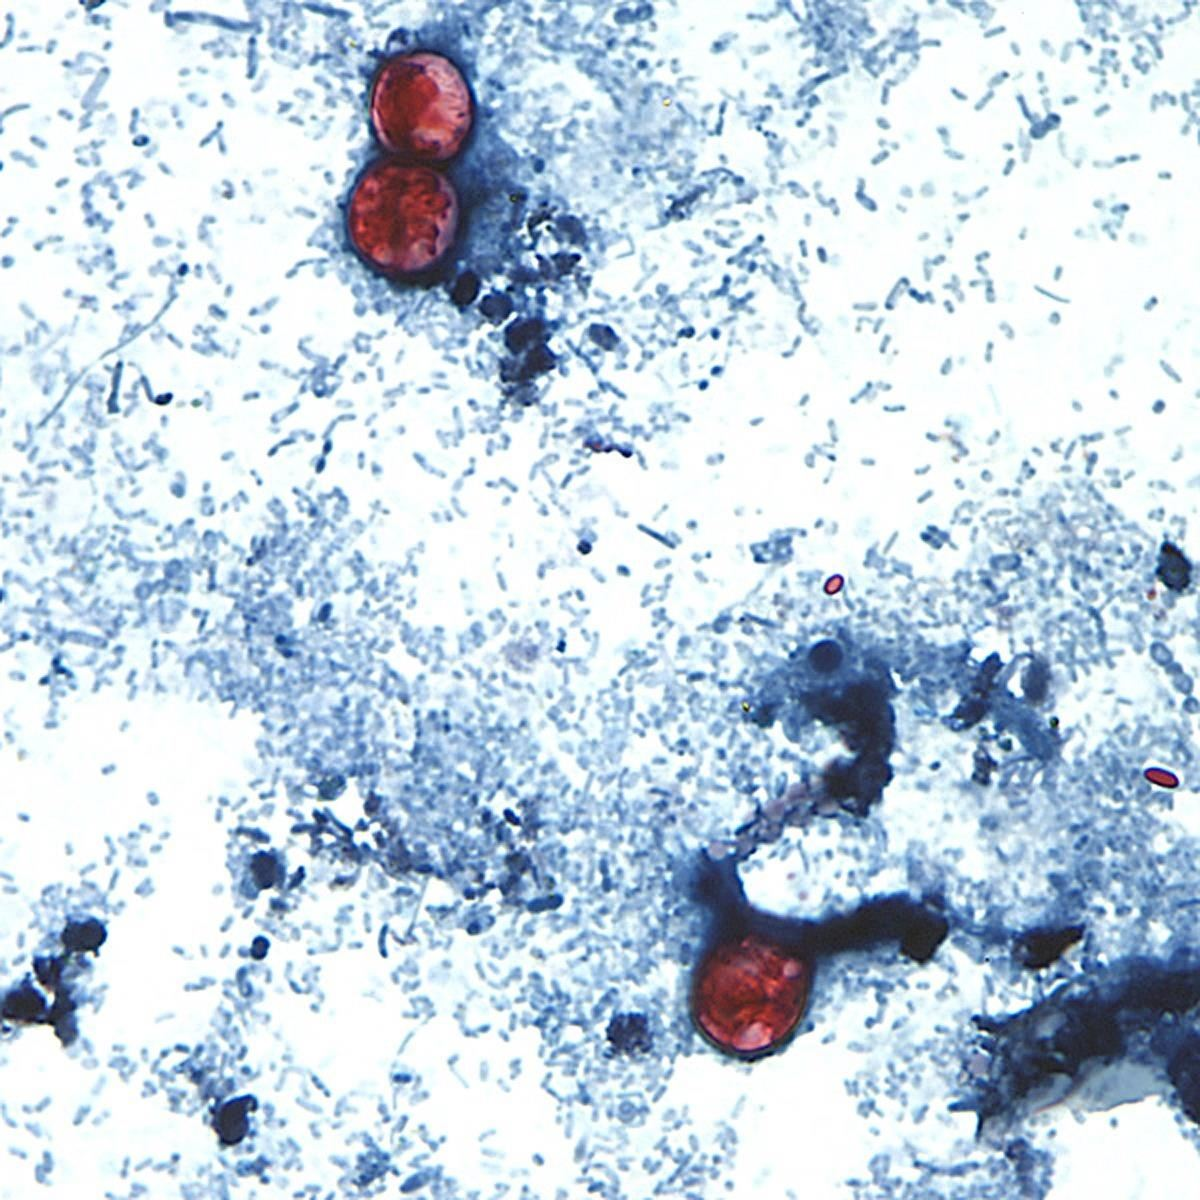 CDC Warns About a Big Spike in Cyclospora Infections — Here's What That Is & How to Avoid It